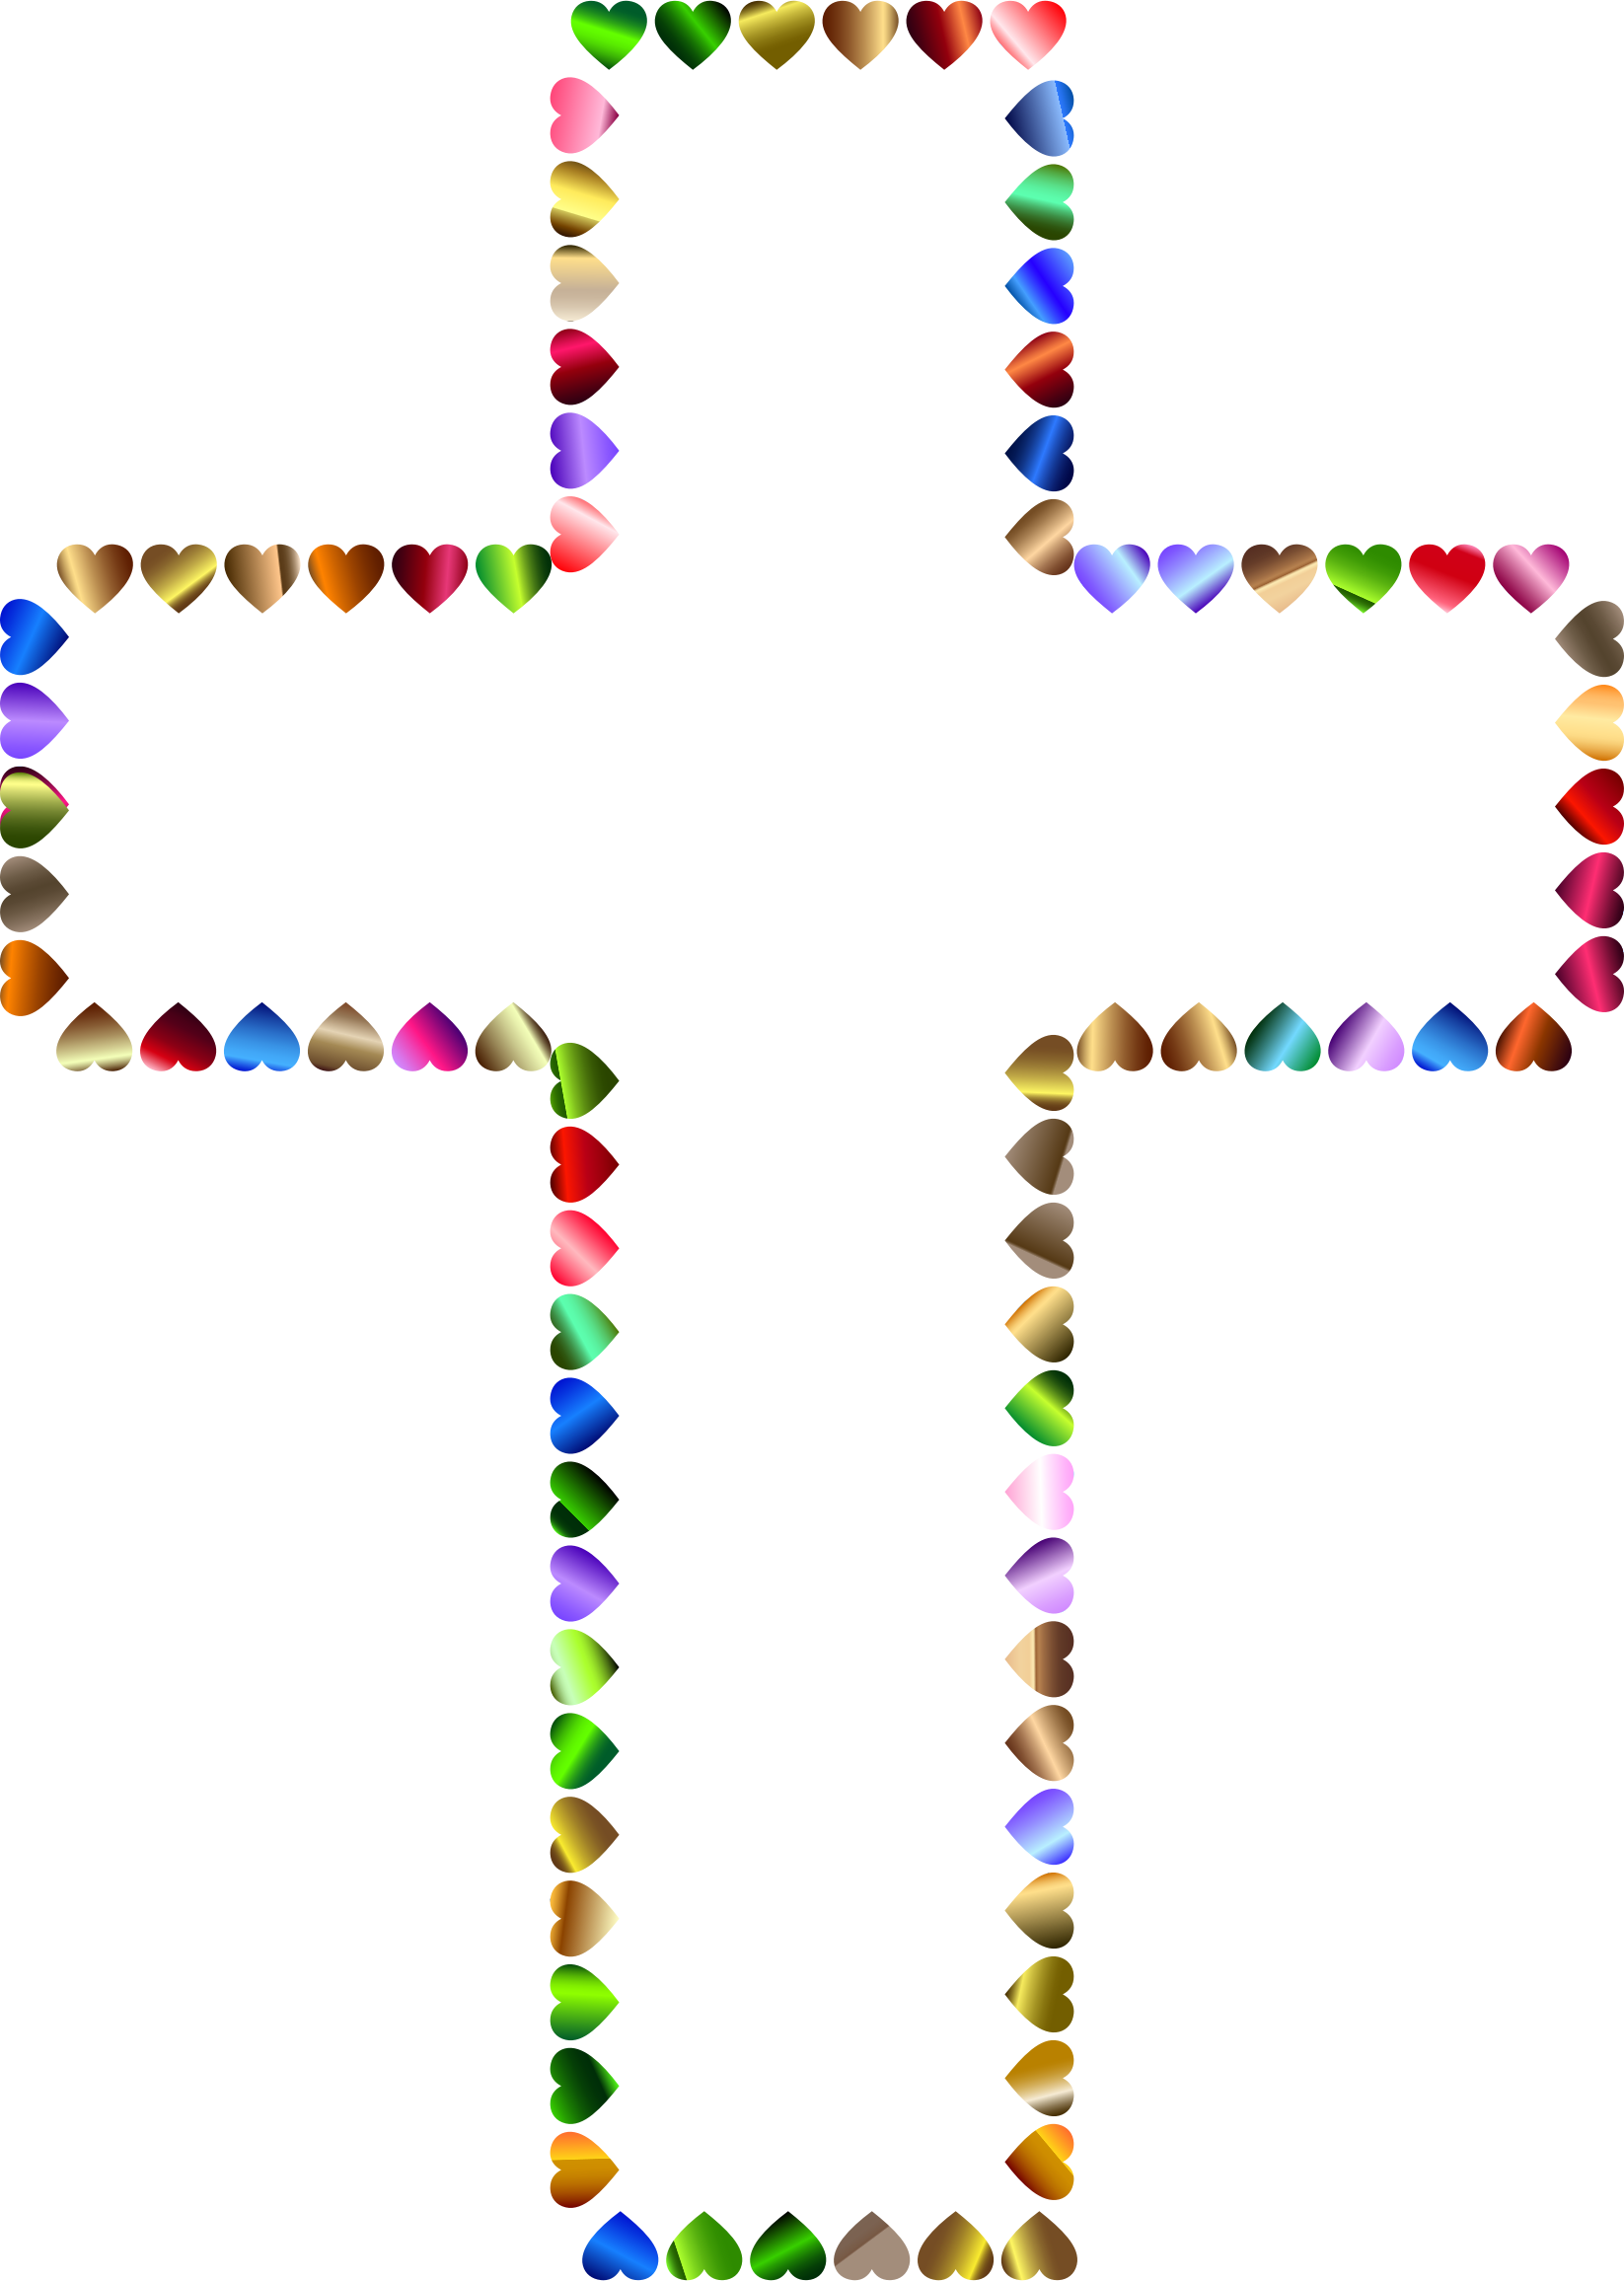 Prismatic Hearts Cross. 3 Variation 2 by GDJ